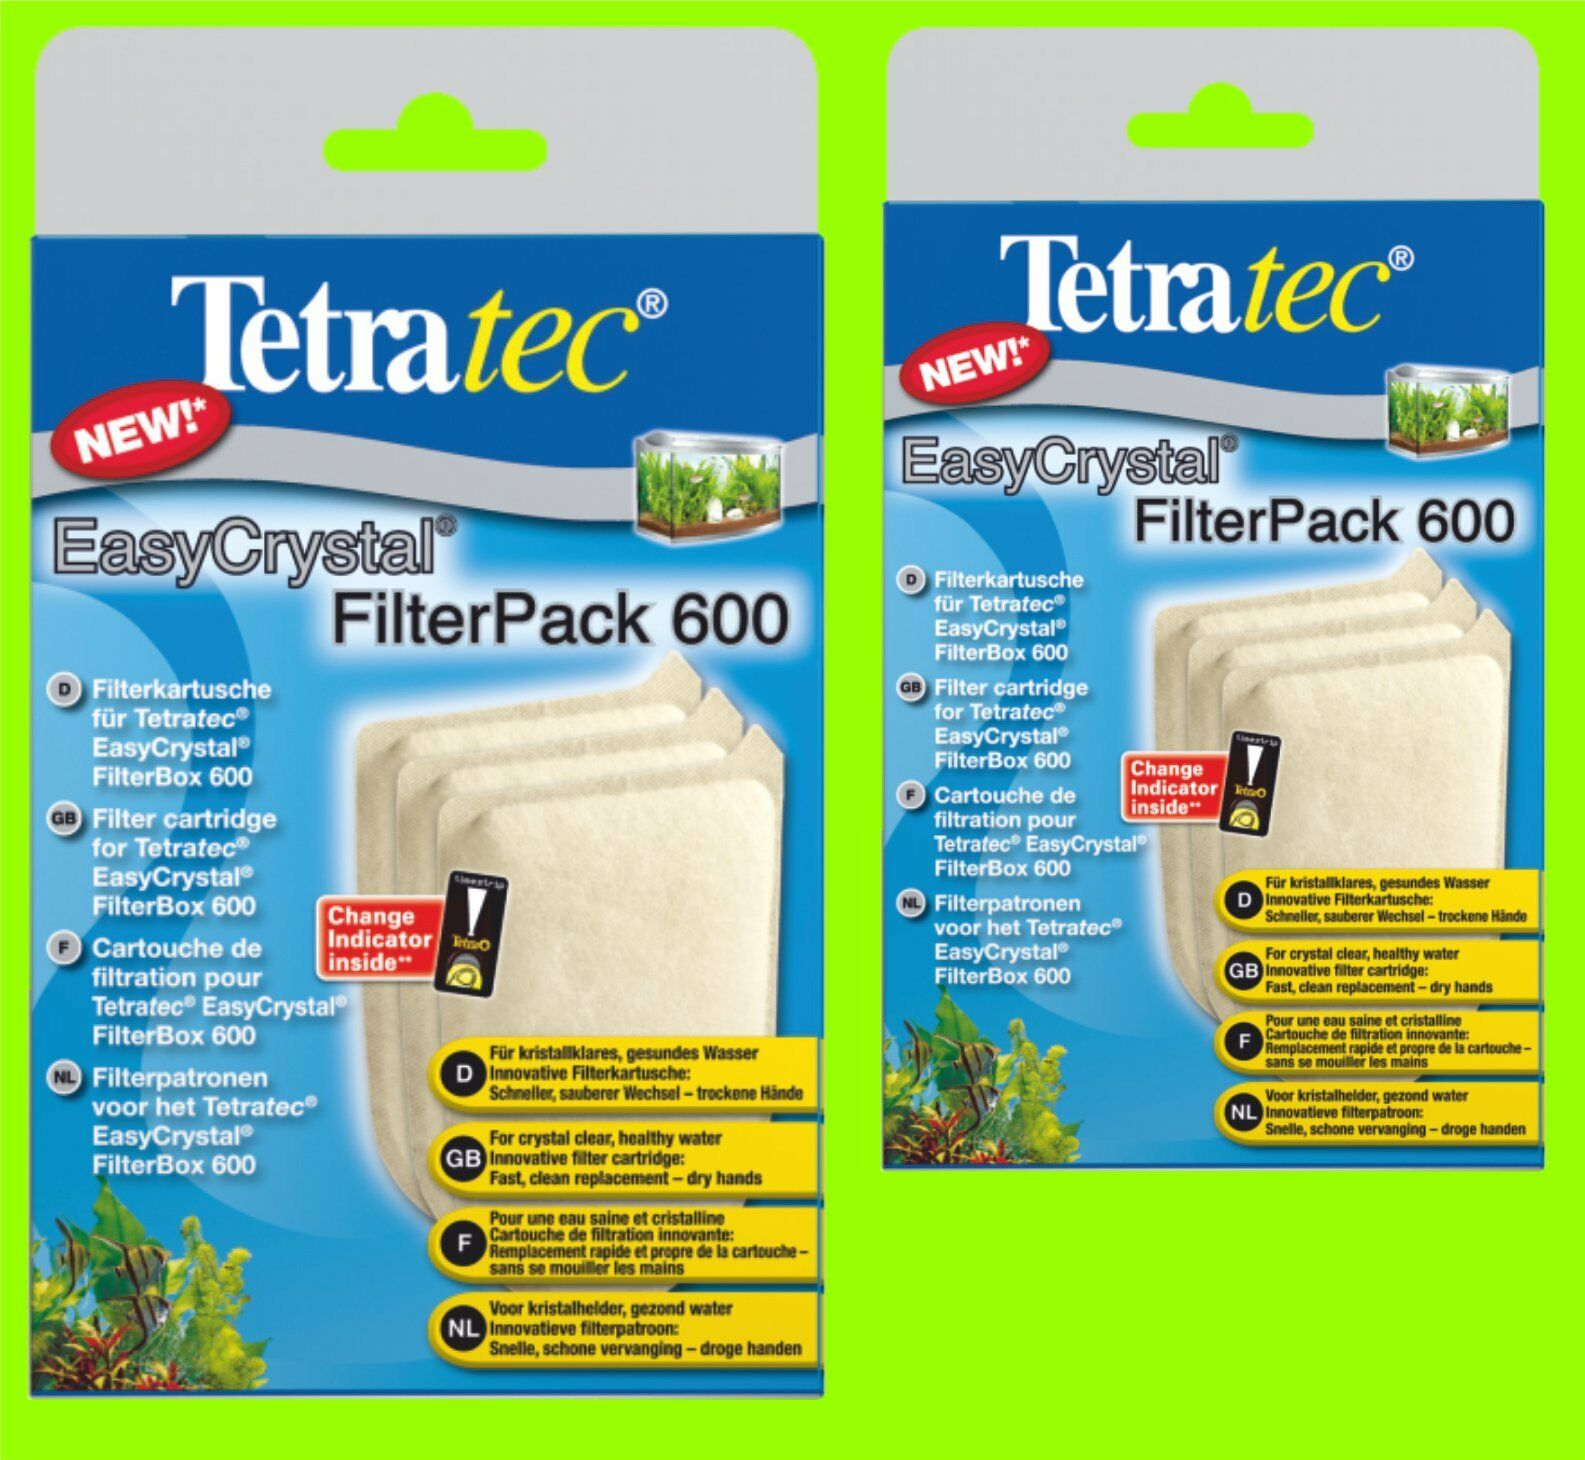 Easycrystal 600 FilterPack 2 Packs A 3 FILTRE cartouches pour TetraTec FilterBox